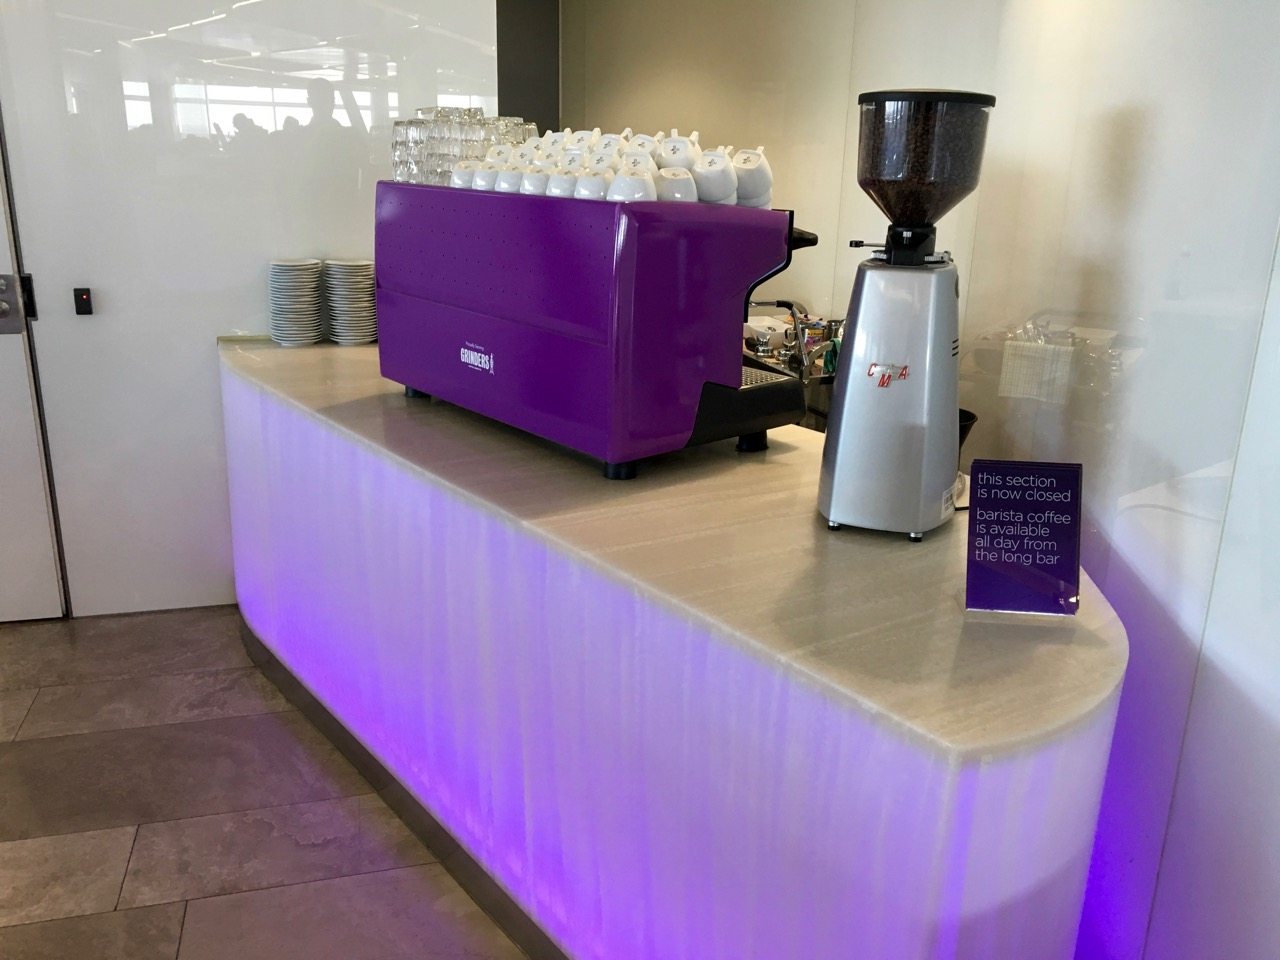 Sydney Virgin Australia Lounge Coffee1 | Point Hacks